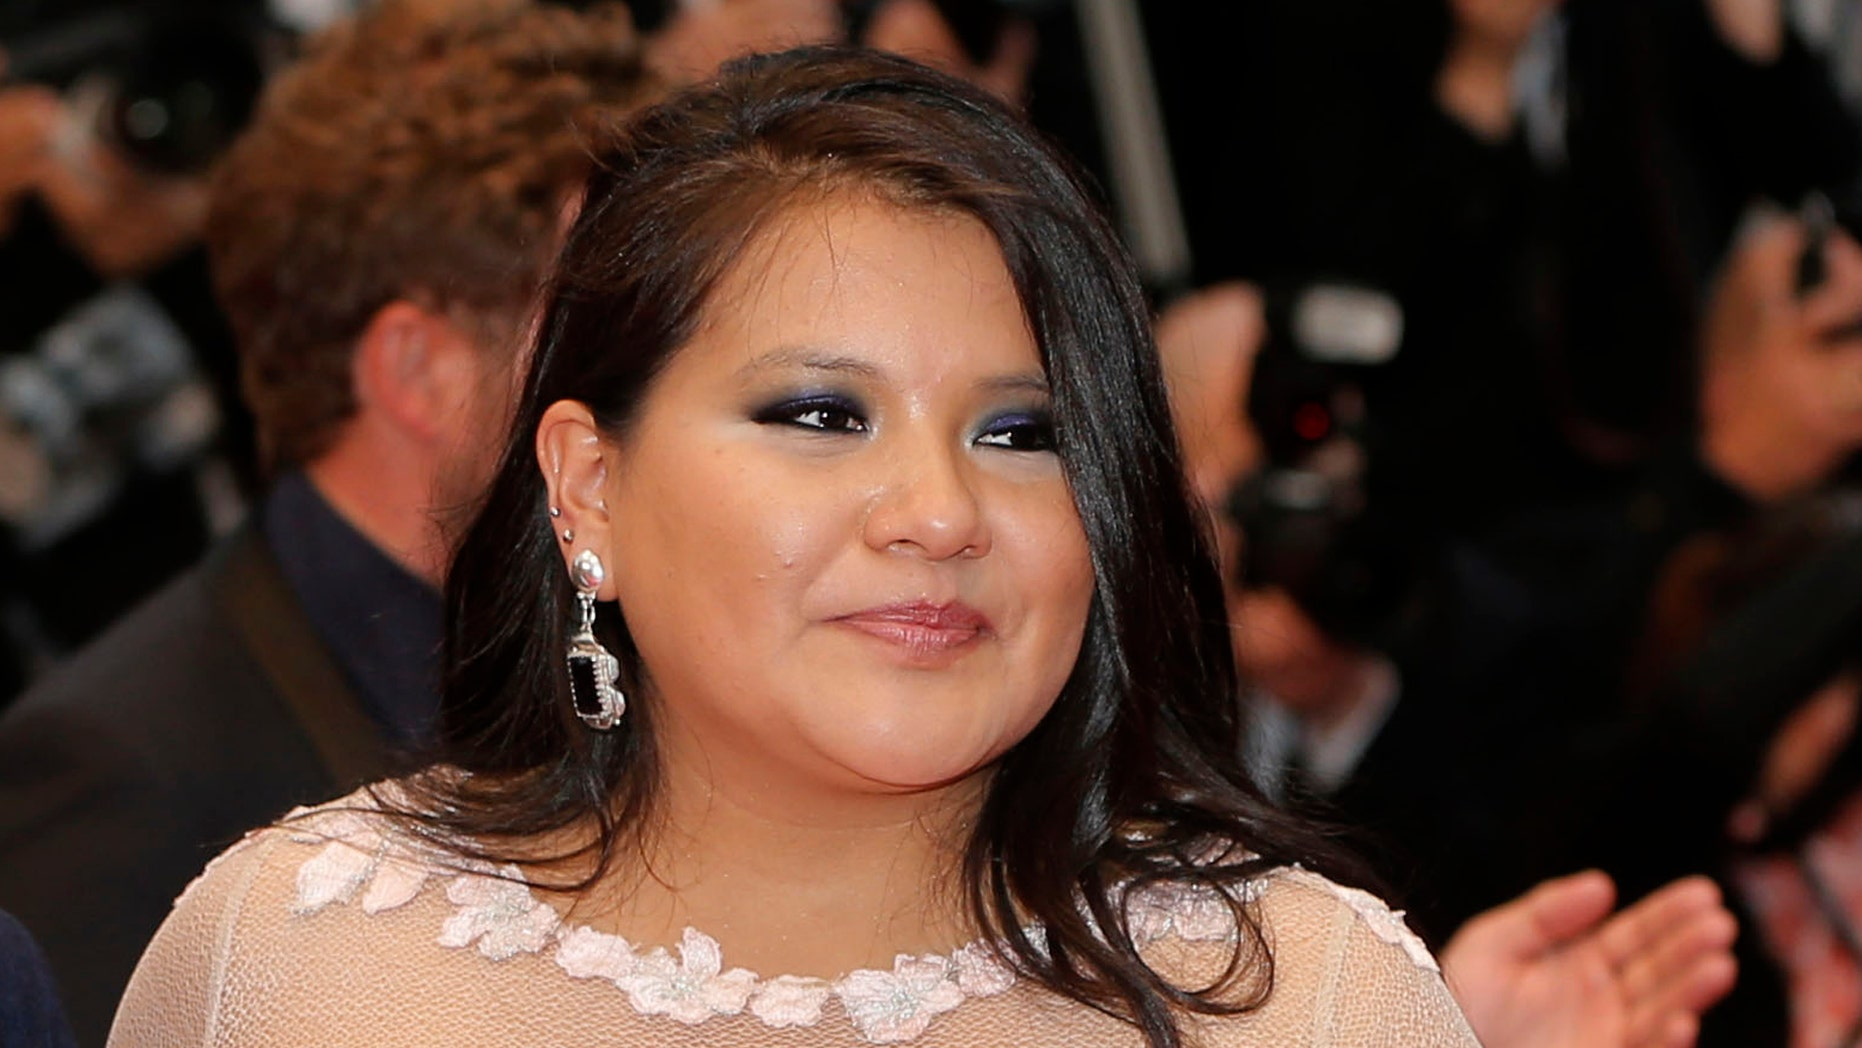 May 17, 2013. Misty Upham at the Cannes Film Festival.